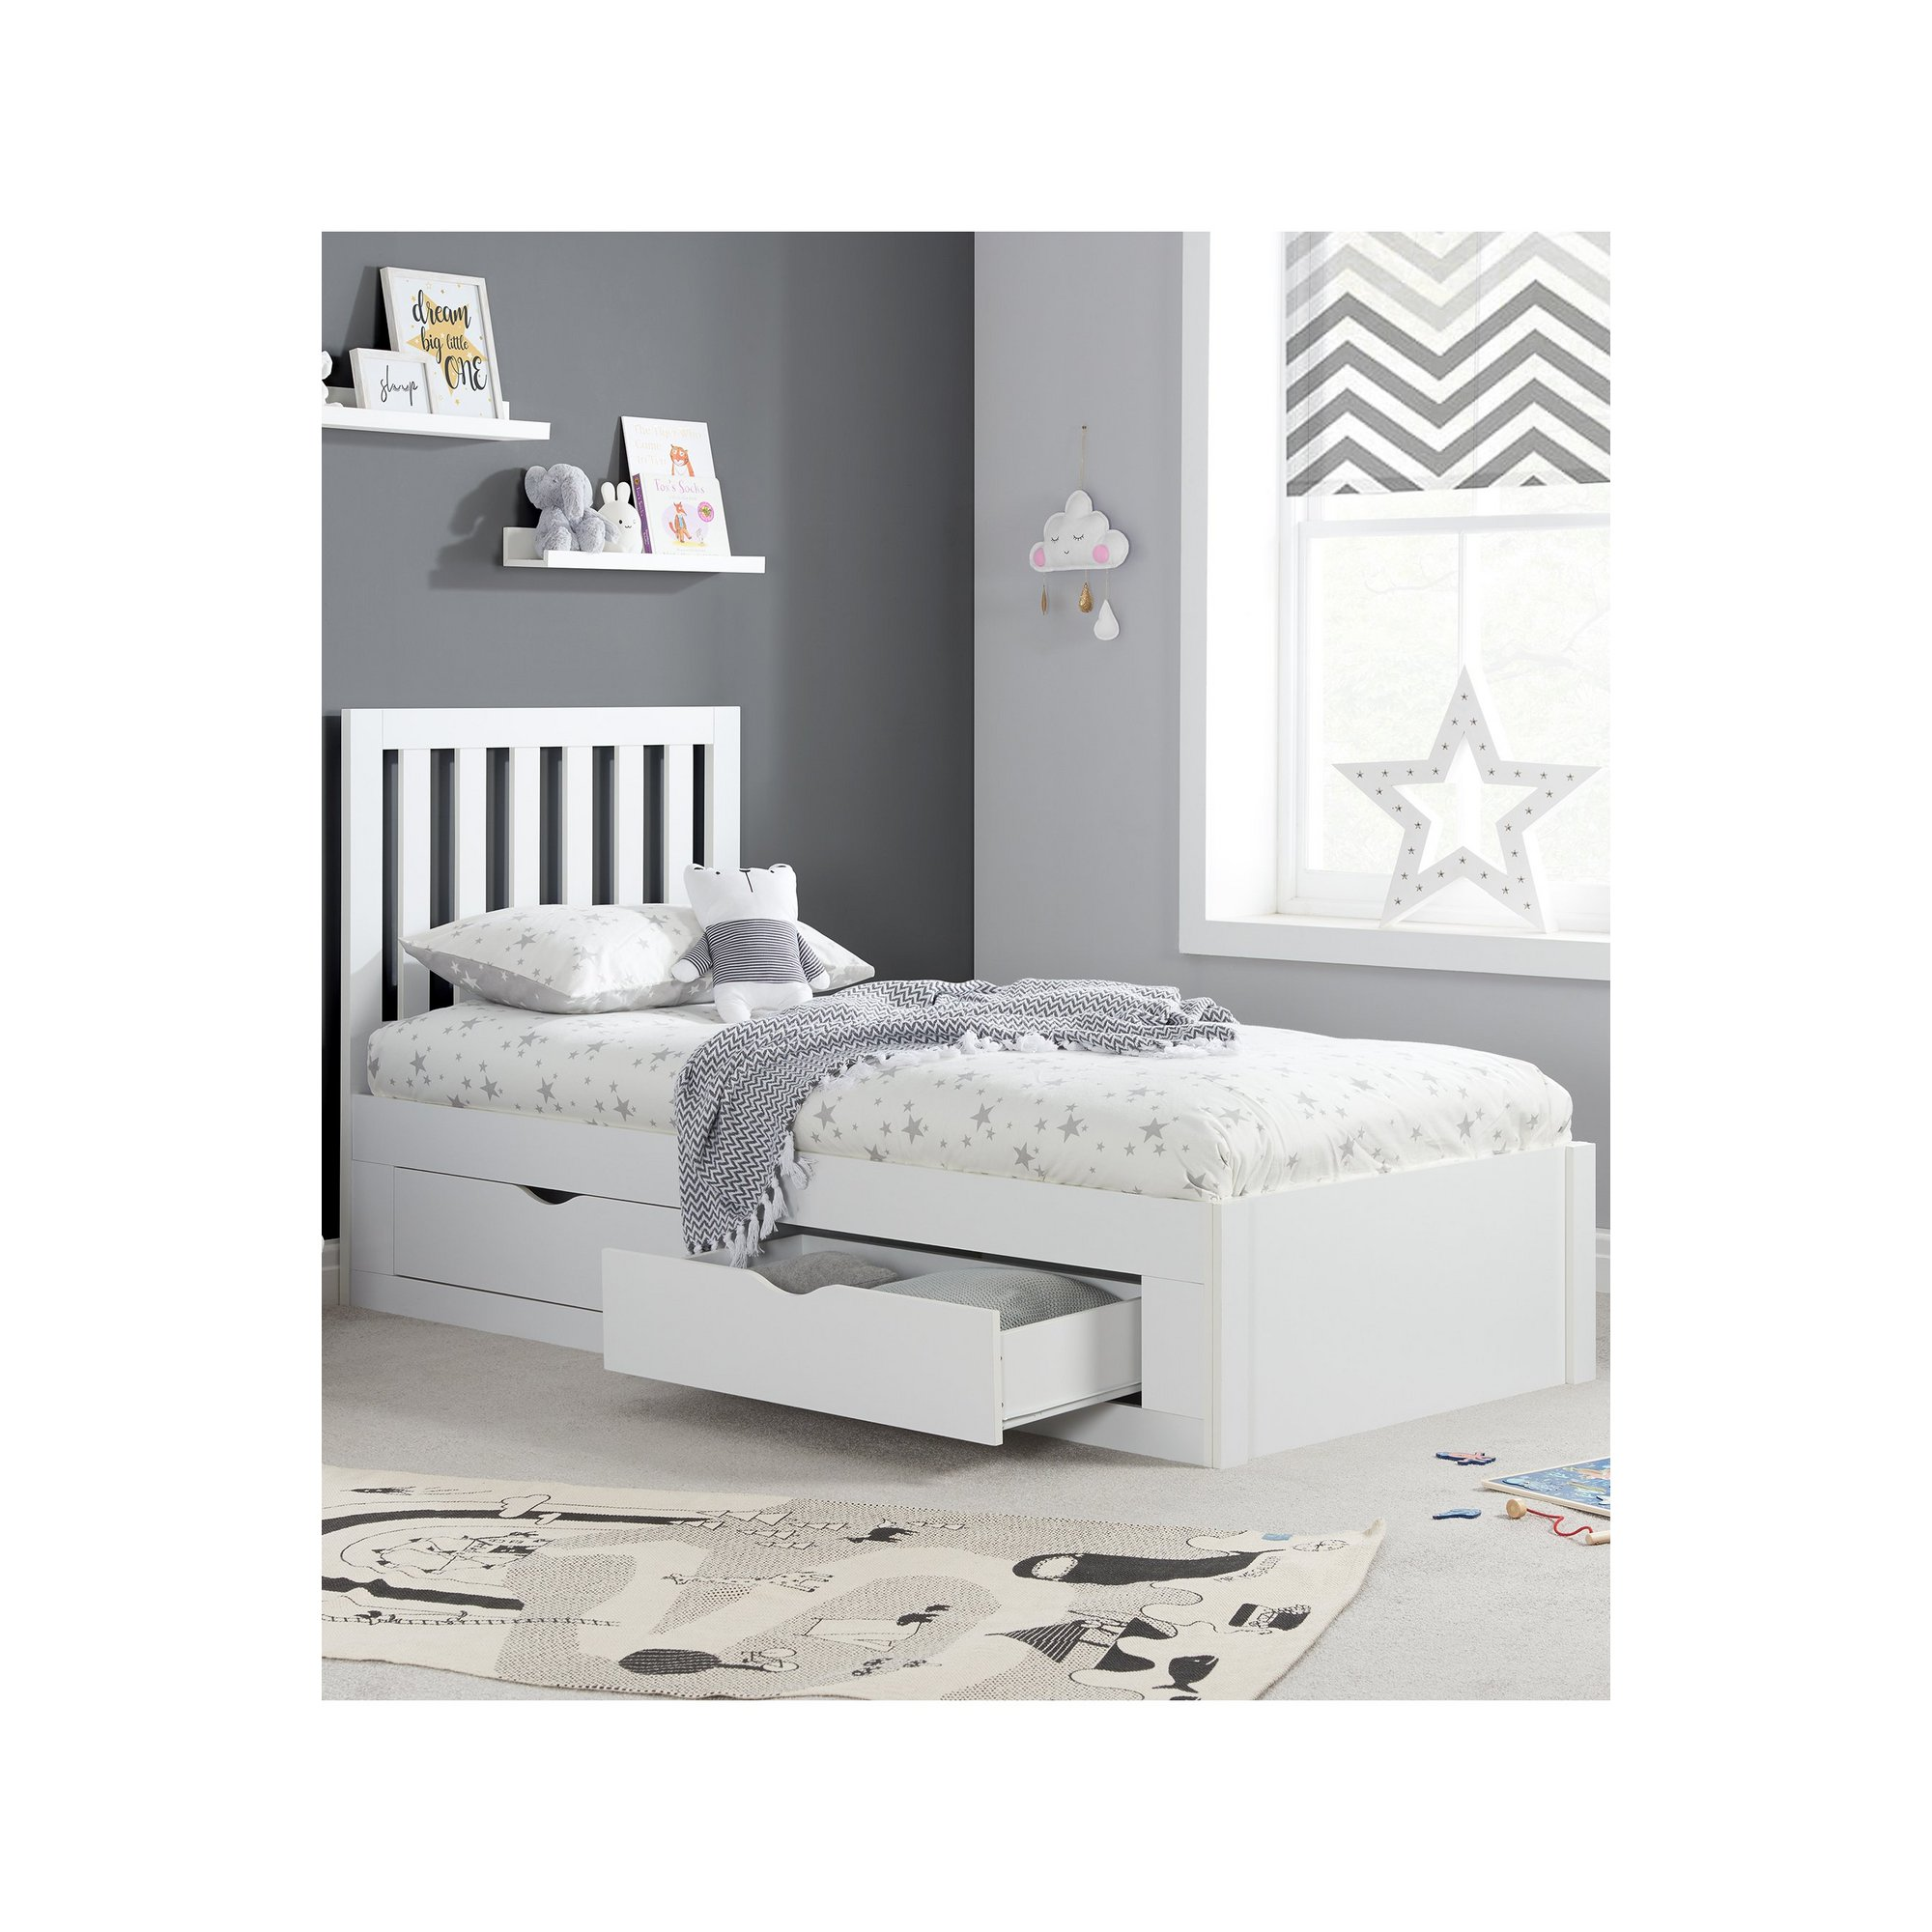 Image of Appleby Bed